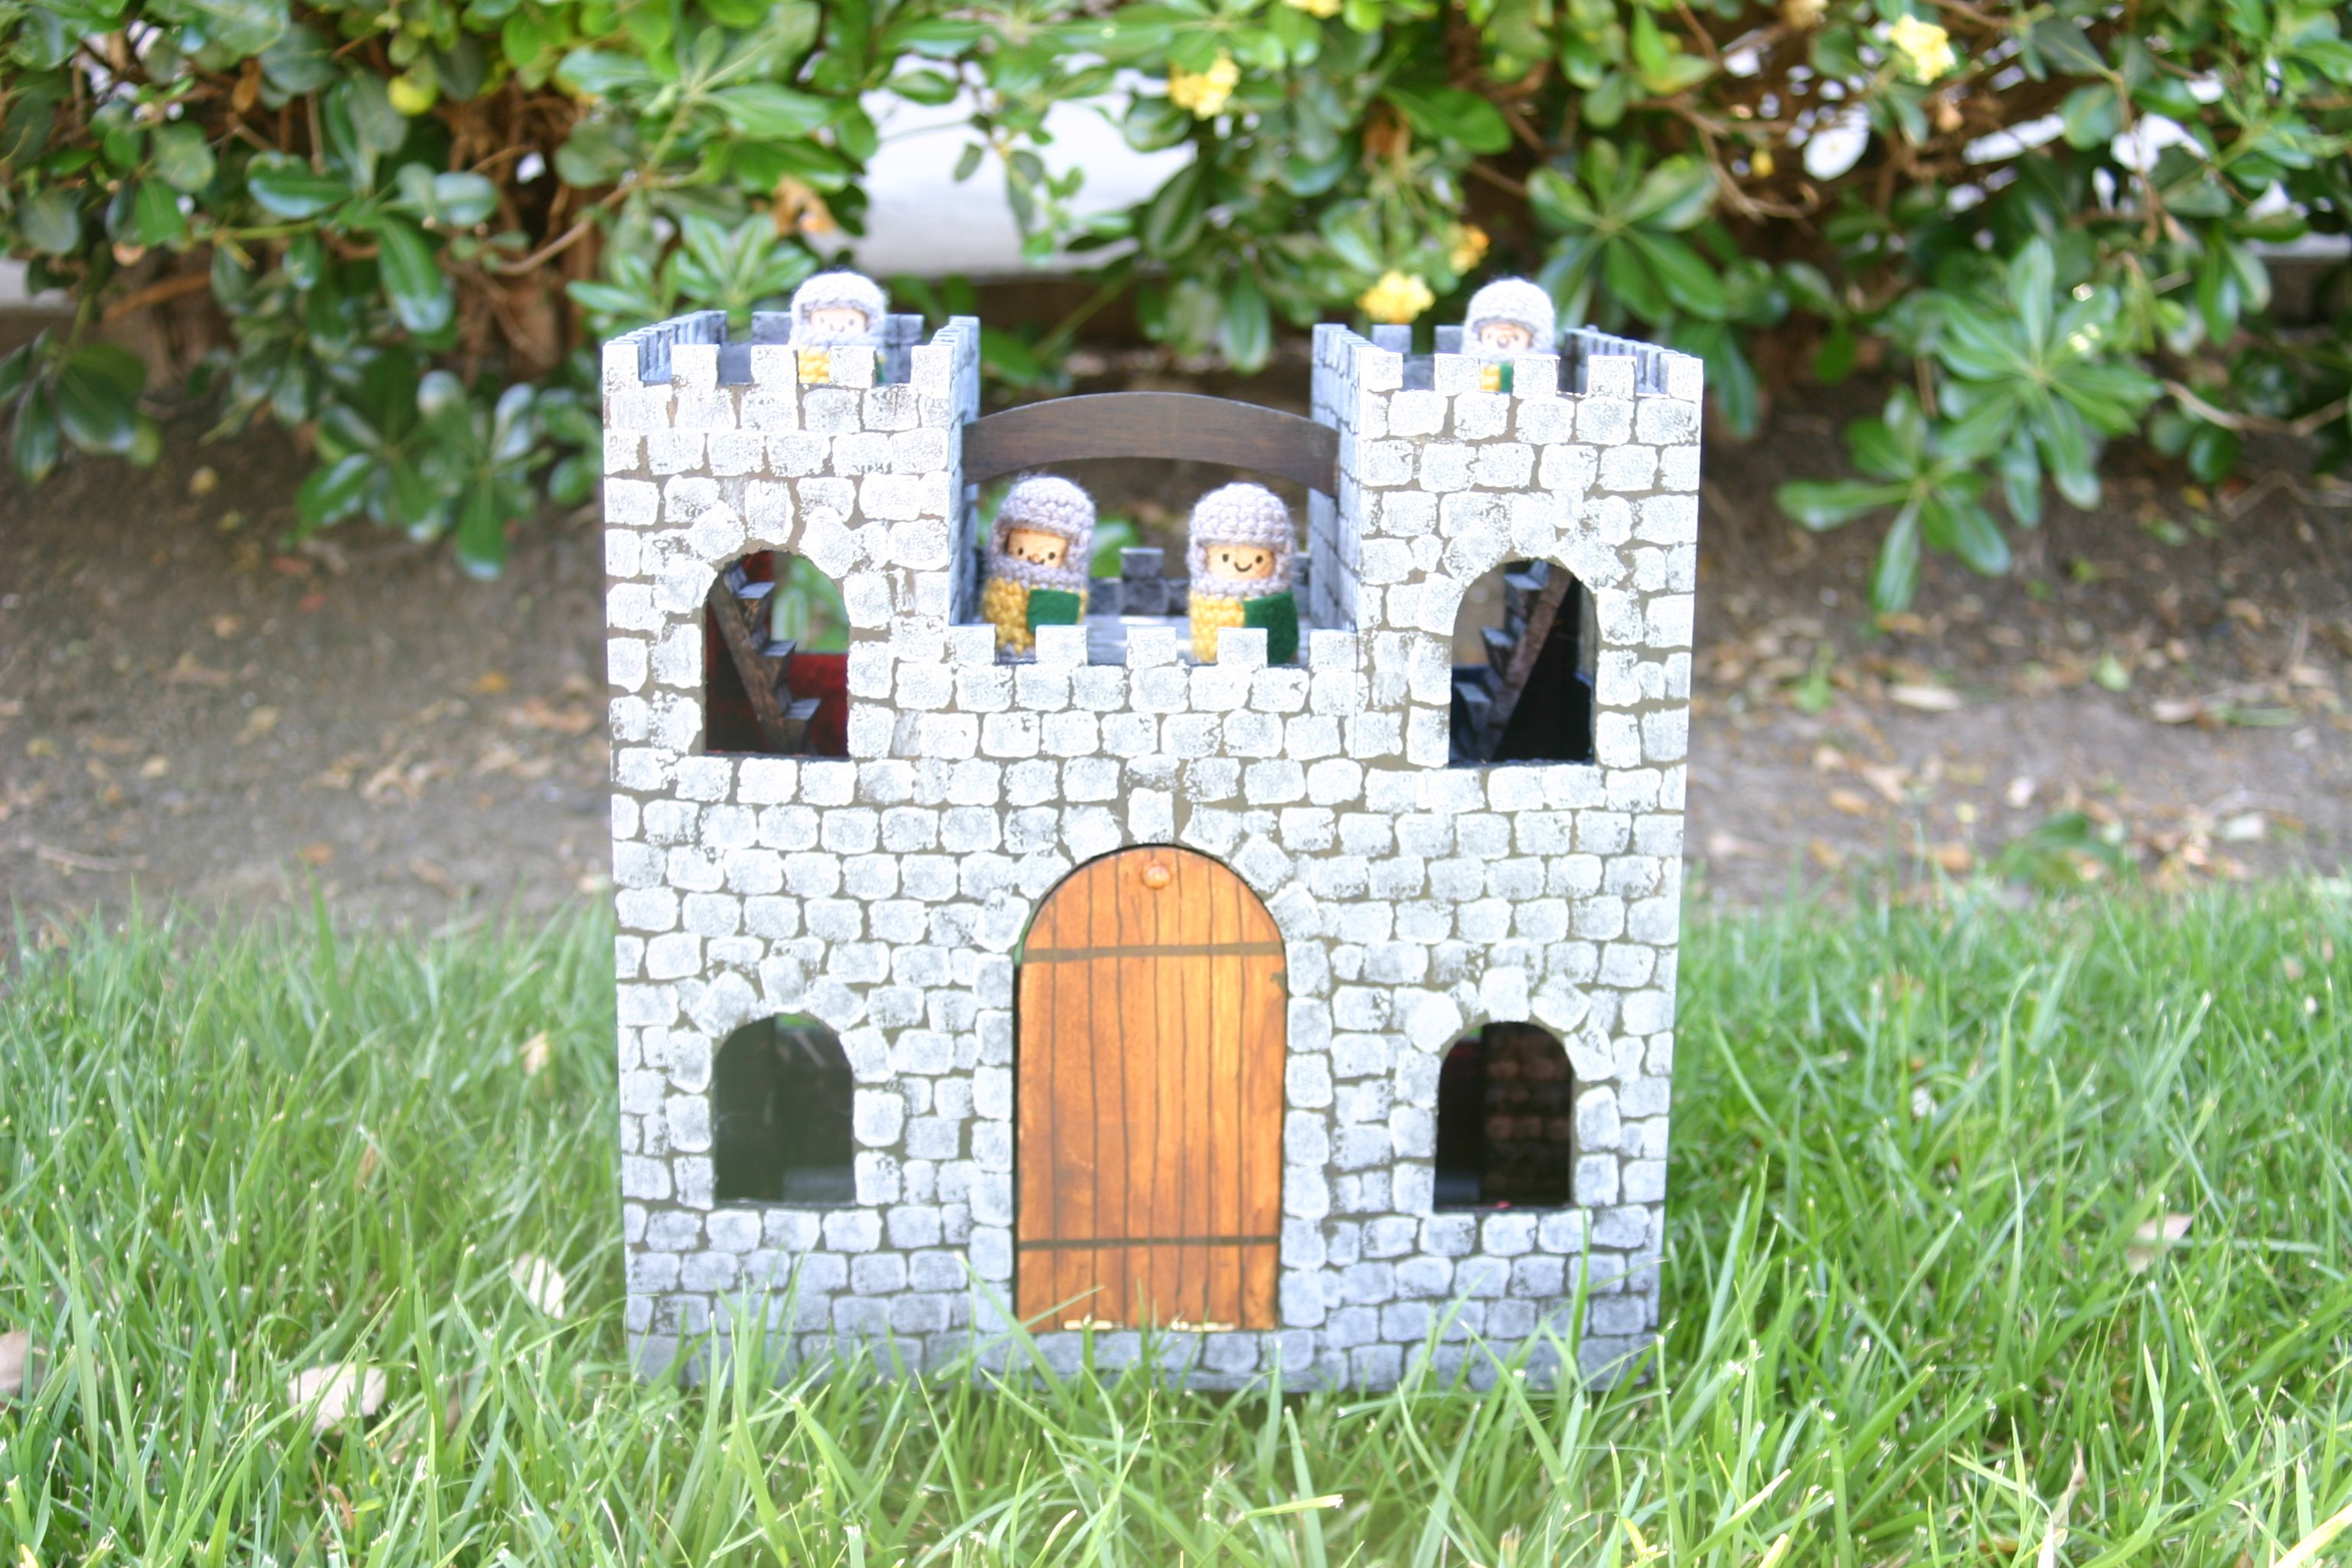 A Couple Of Years Ago I Saw This Great Wooden Castle Dollhouse Type